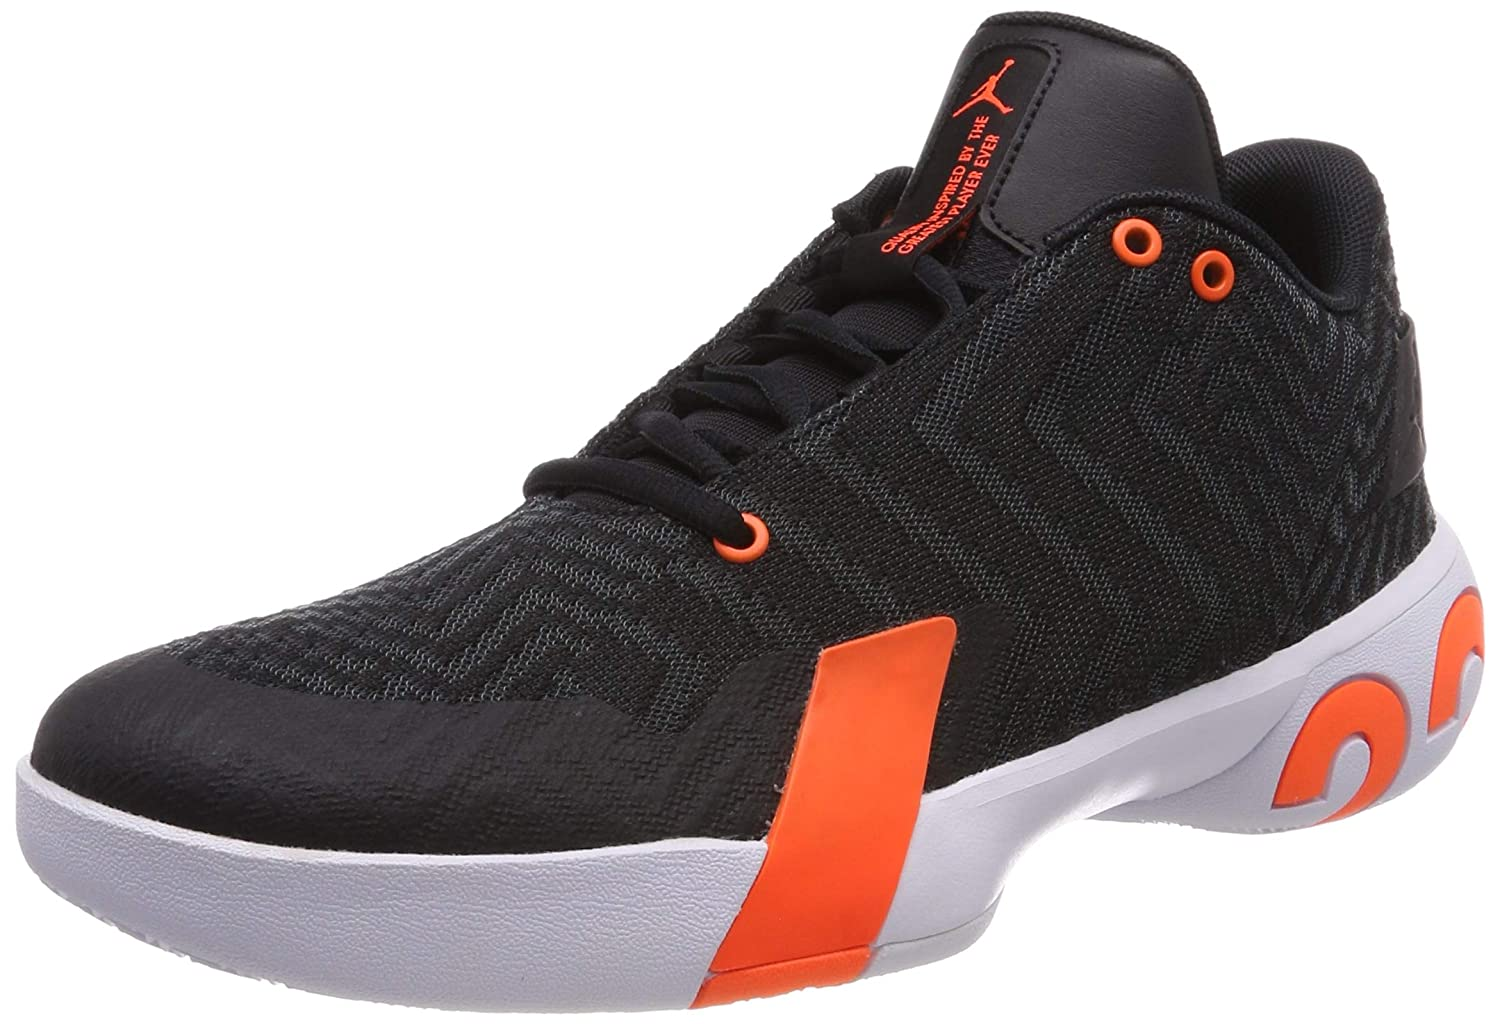 7878084aeaebcb Nike Men s Ultra Fly 3 Low Basketball Shoes  Amazon.co.uk  Shoes   Bags